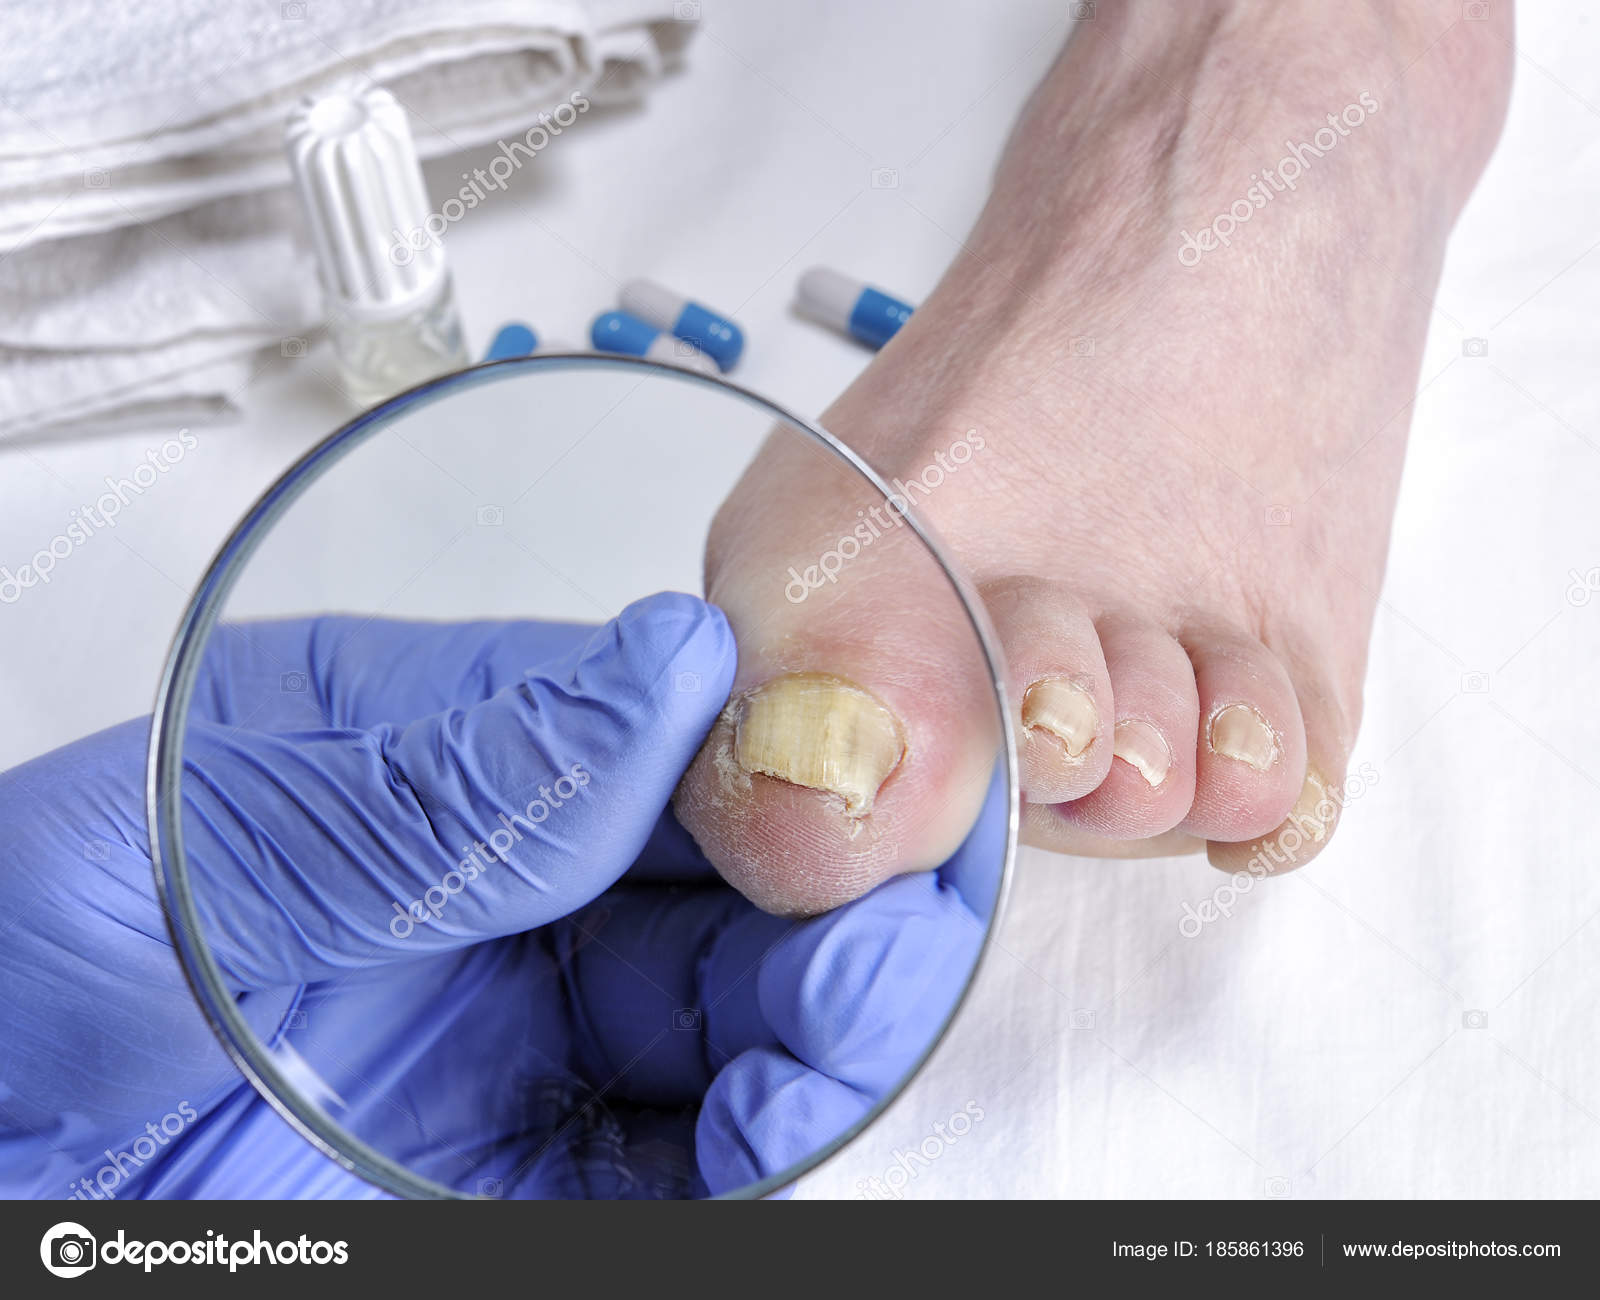 Onychomycosis Nail Disease Due To The Action Of Pathogenic Fungi